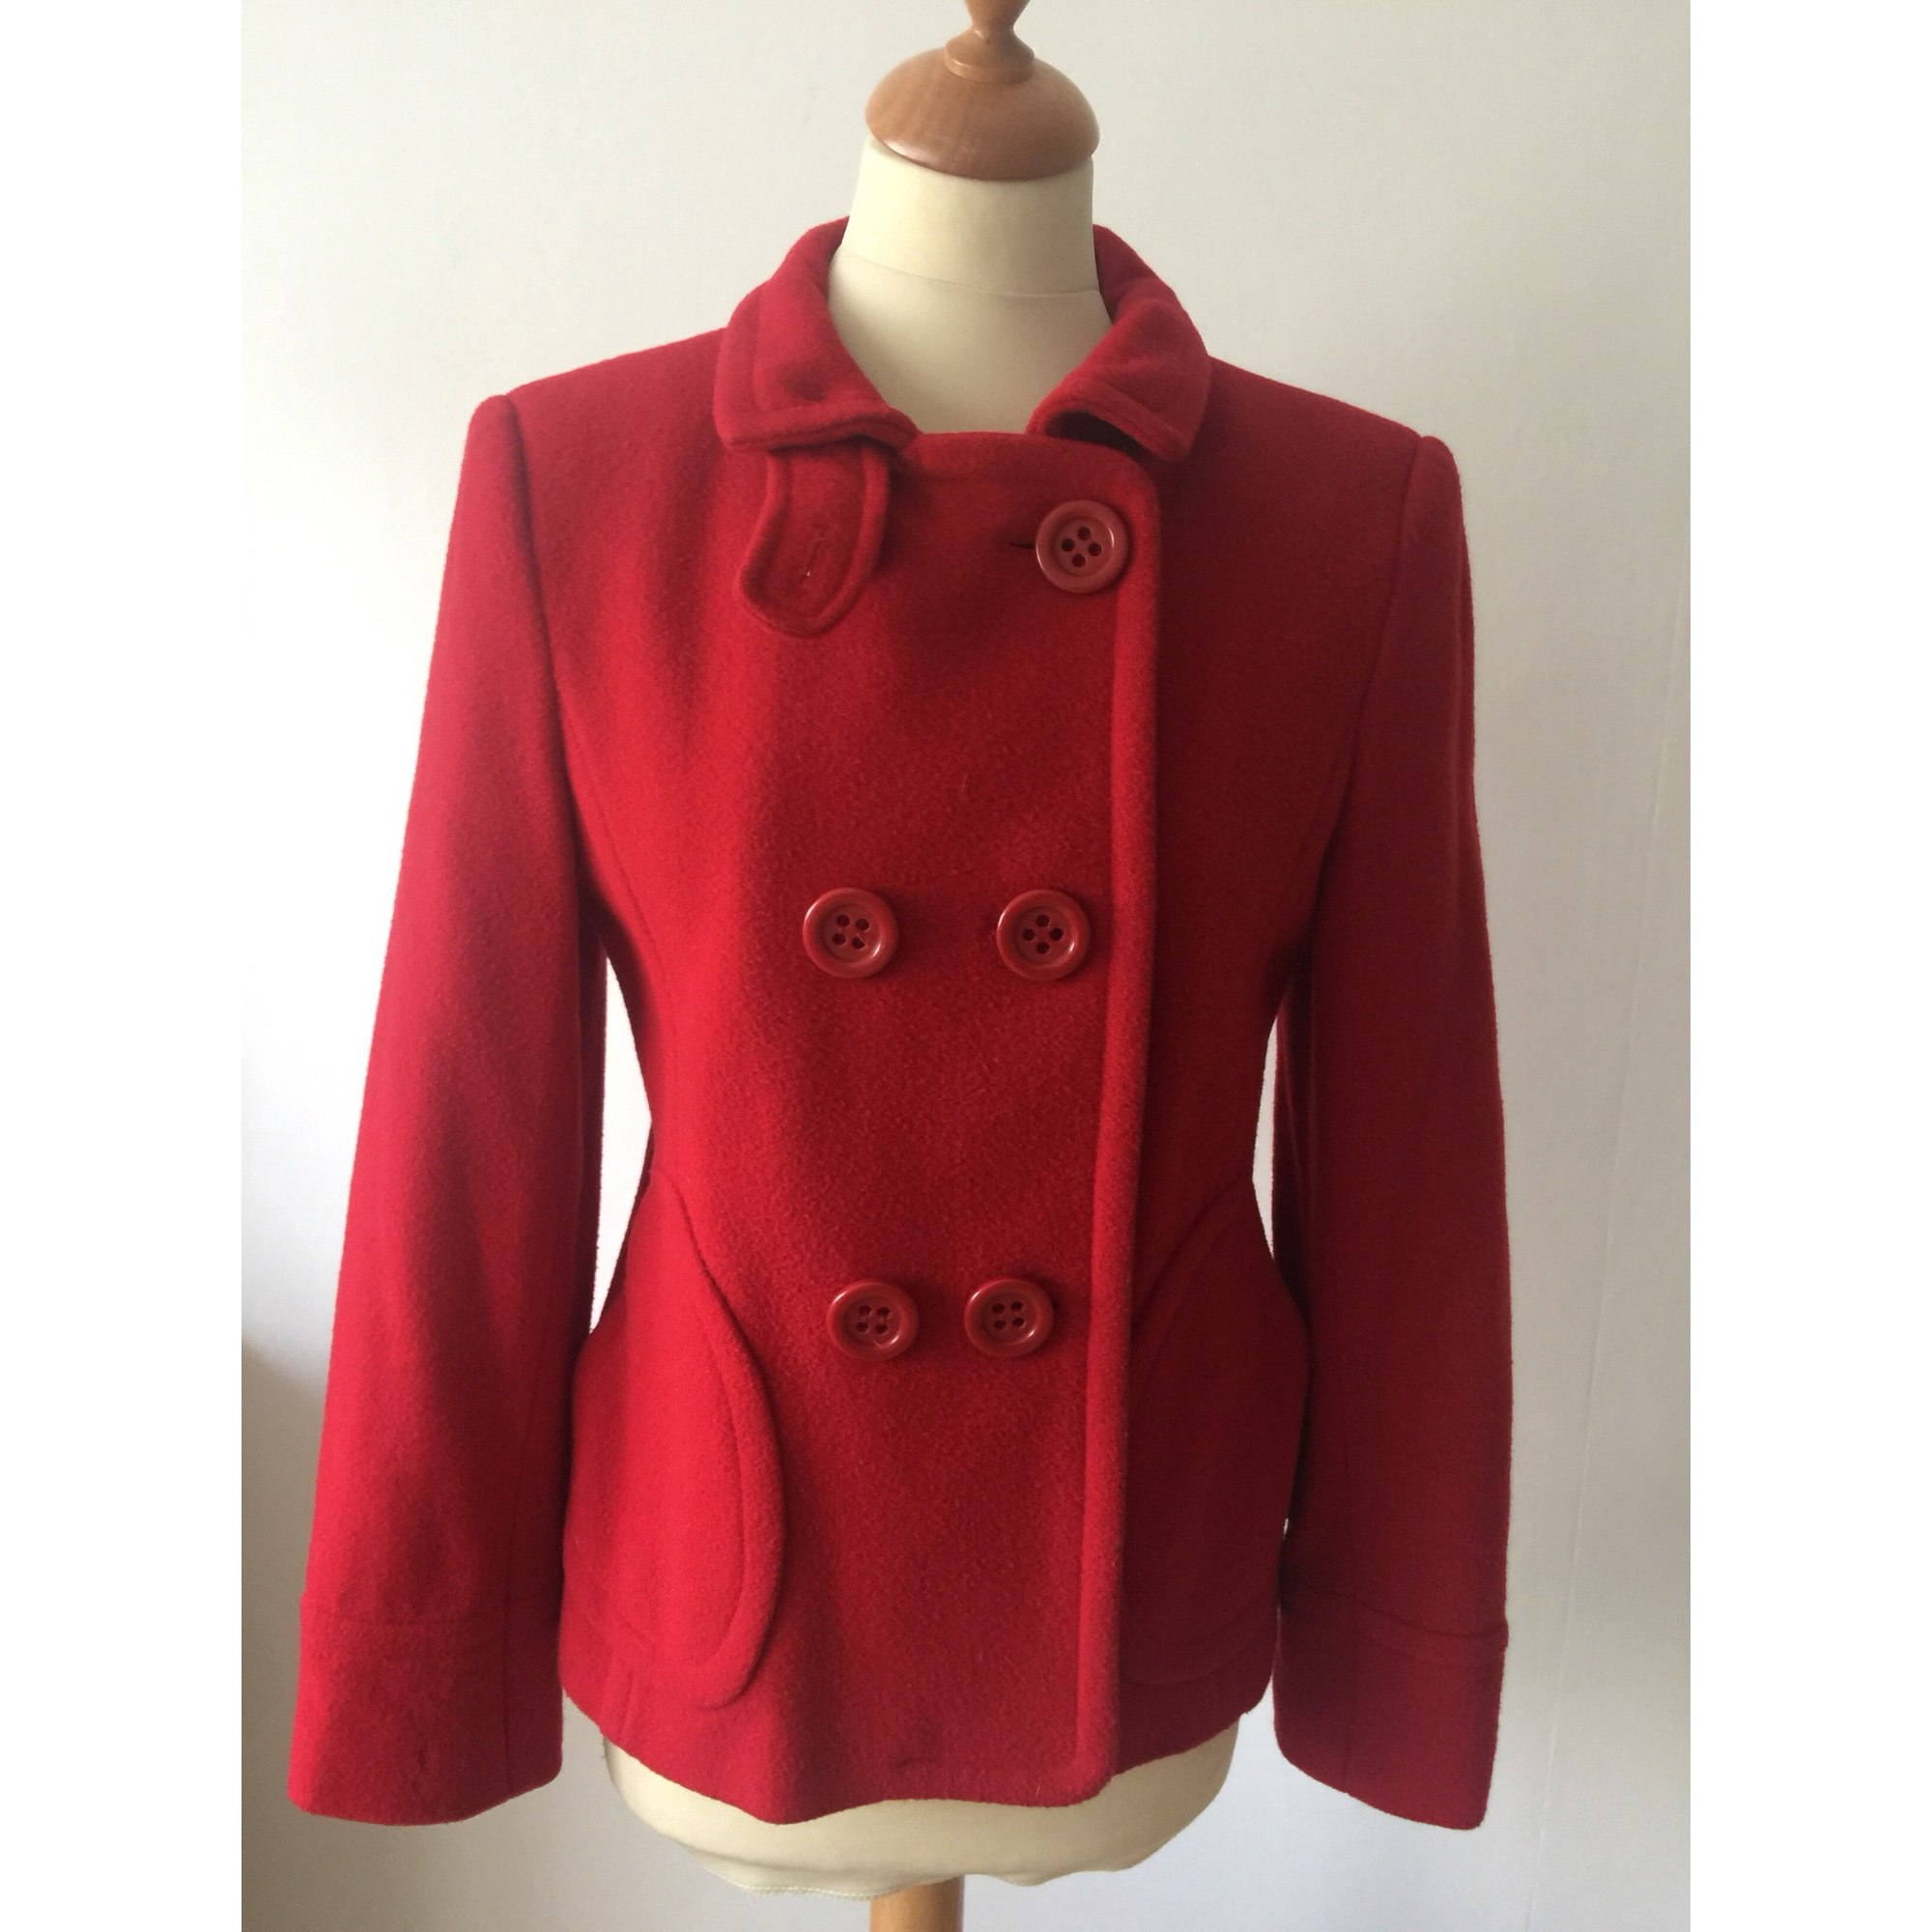 Veste ZARA Rouge, bordeaux